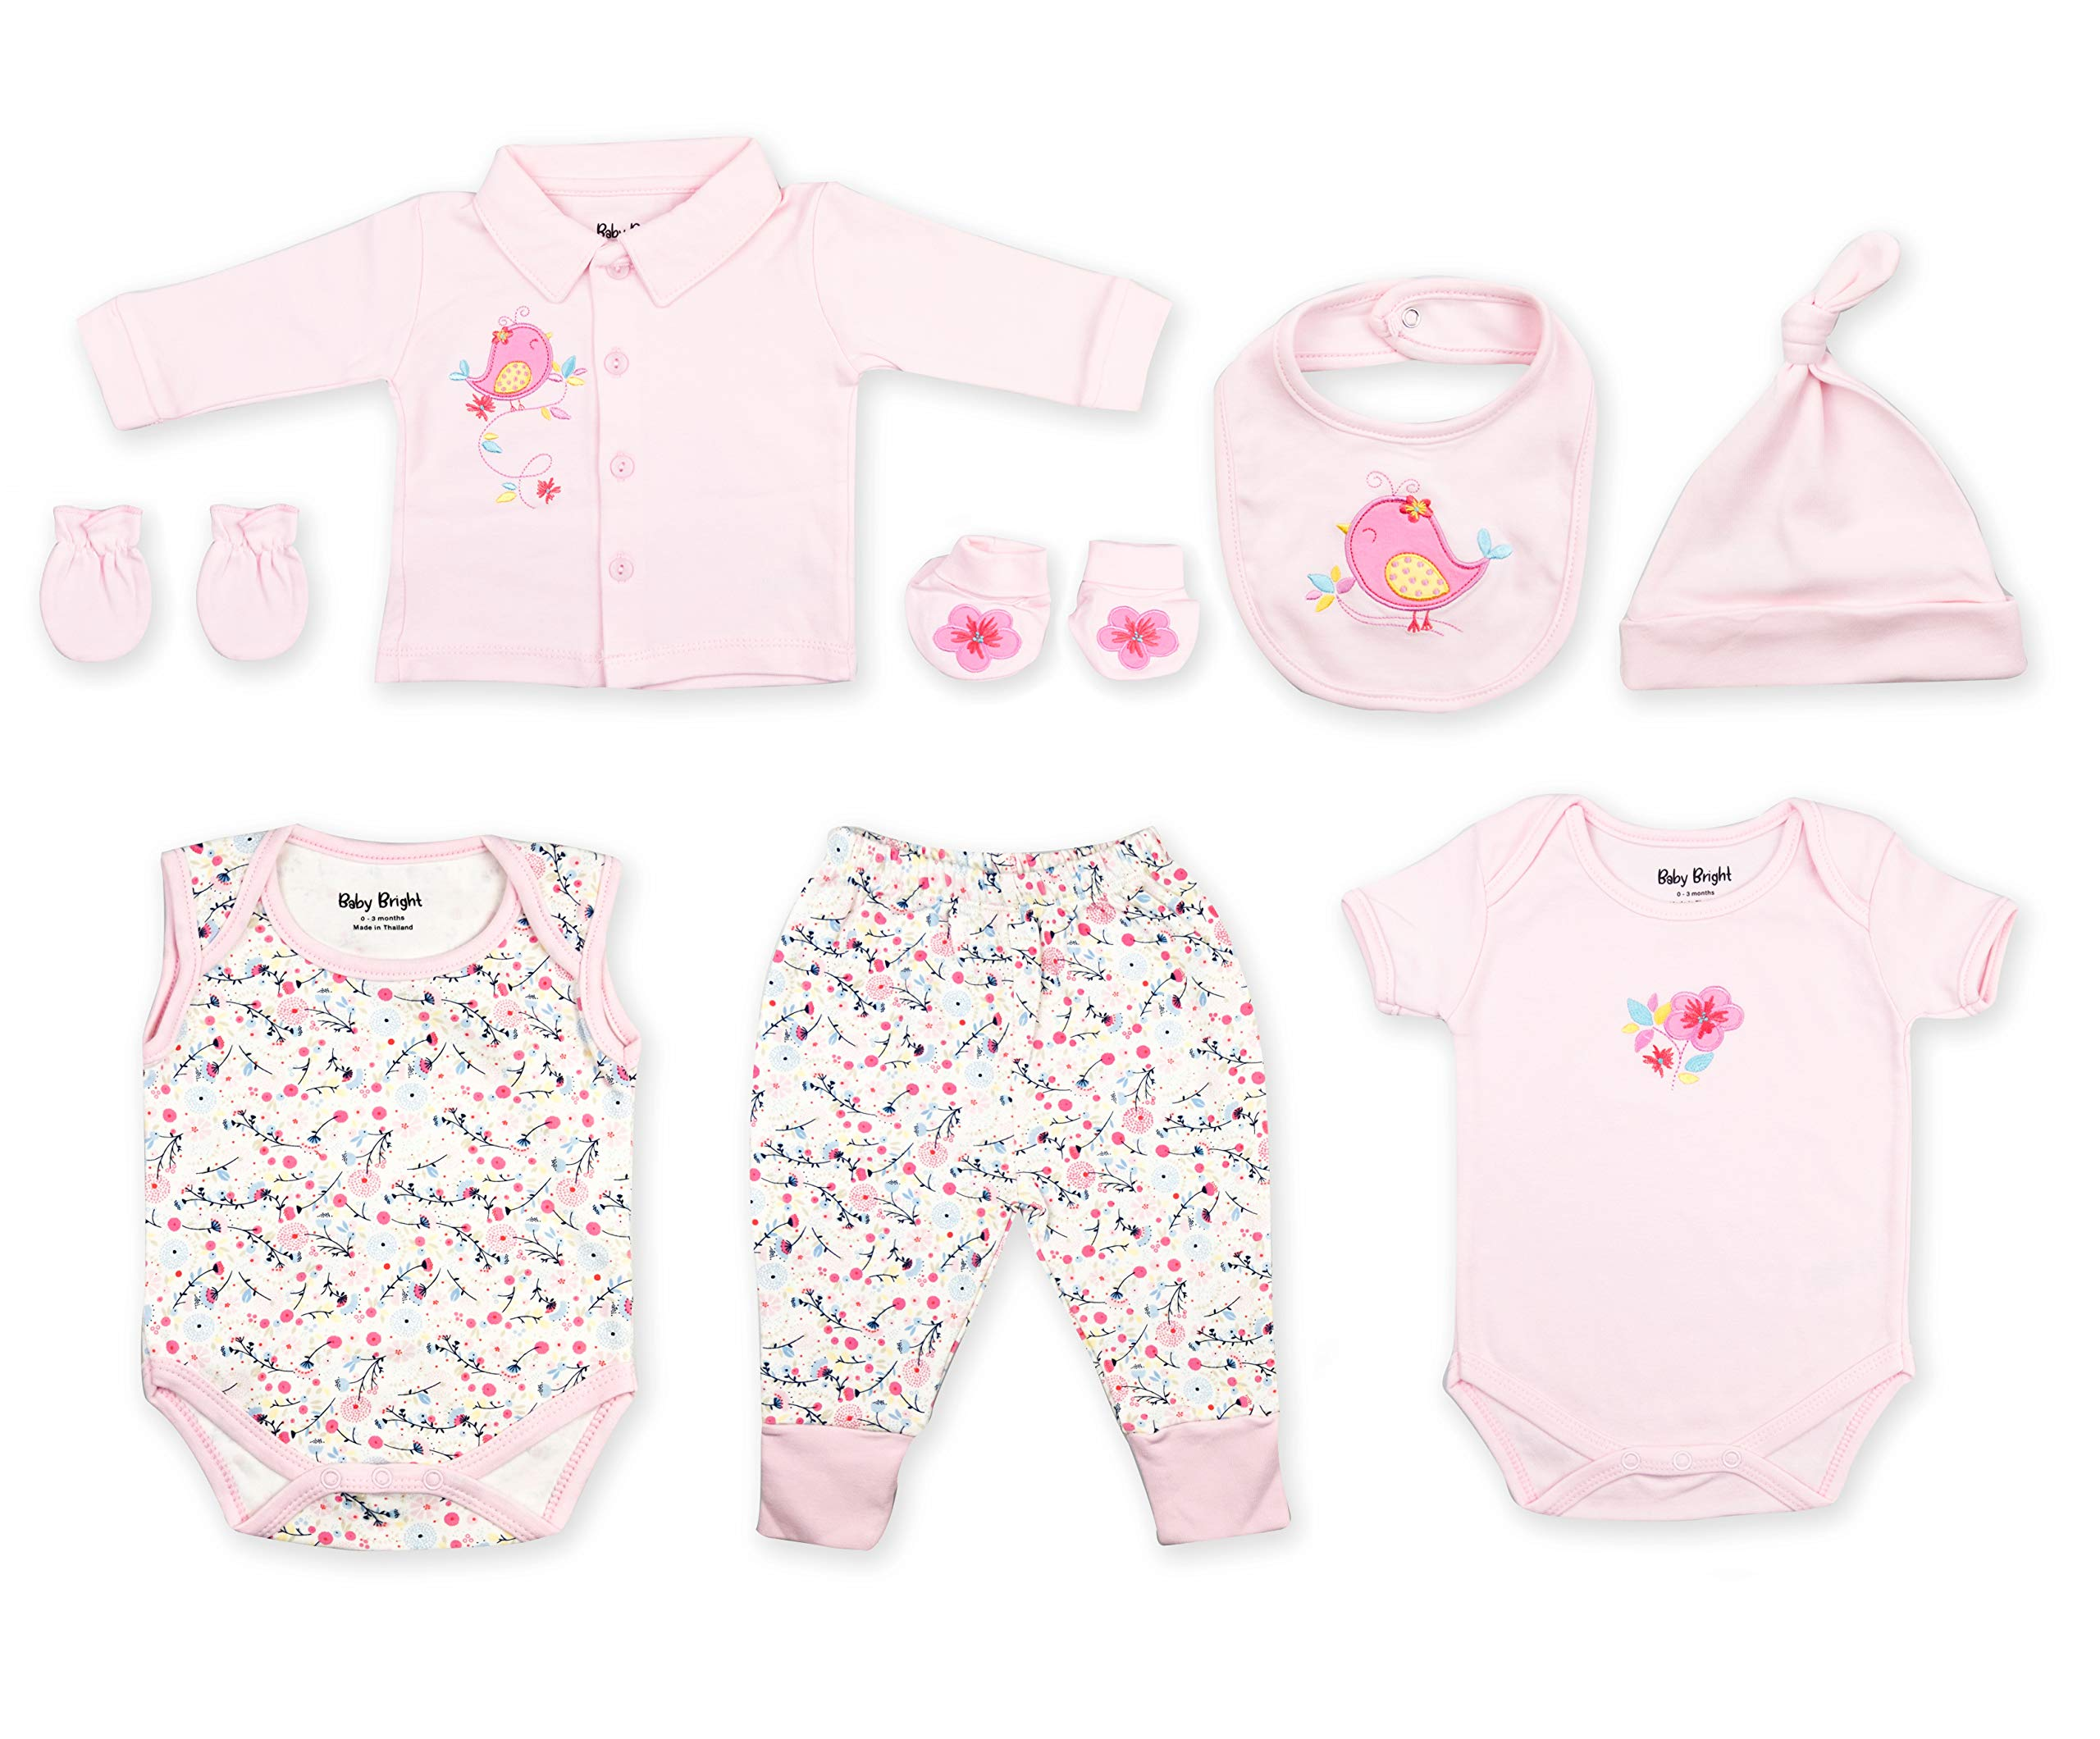 aacf4dd09aa47 Baby Clothes Embroidery – Free Embroidery Patterns